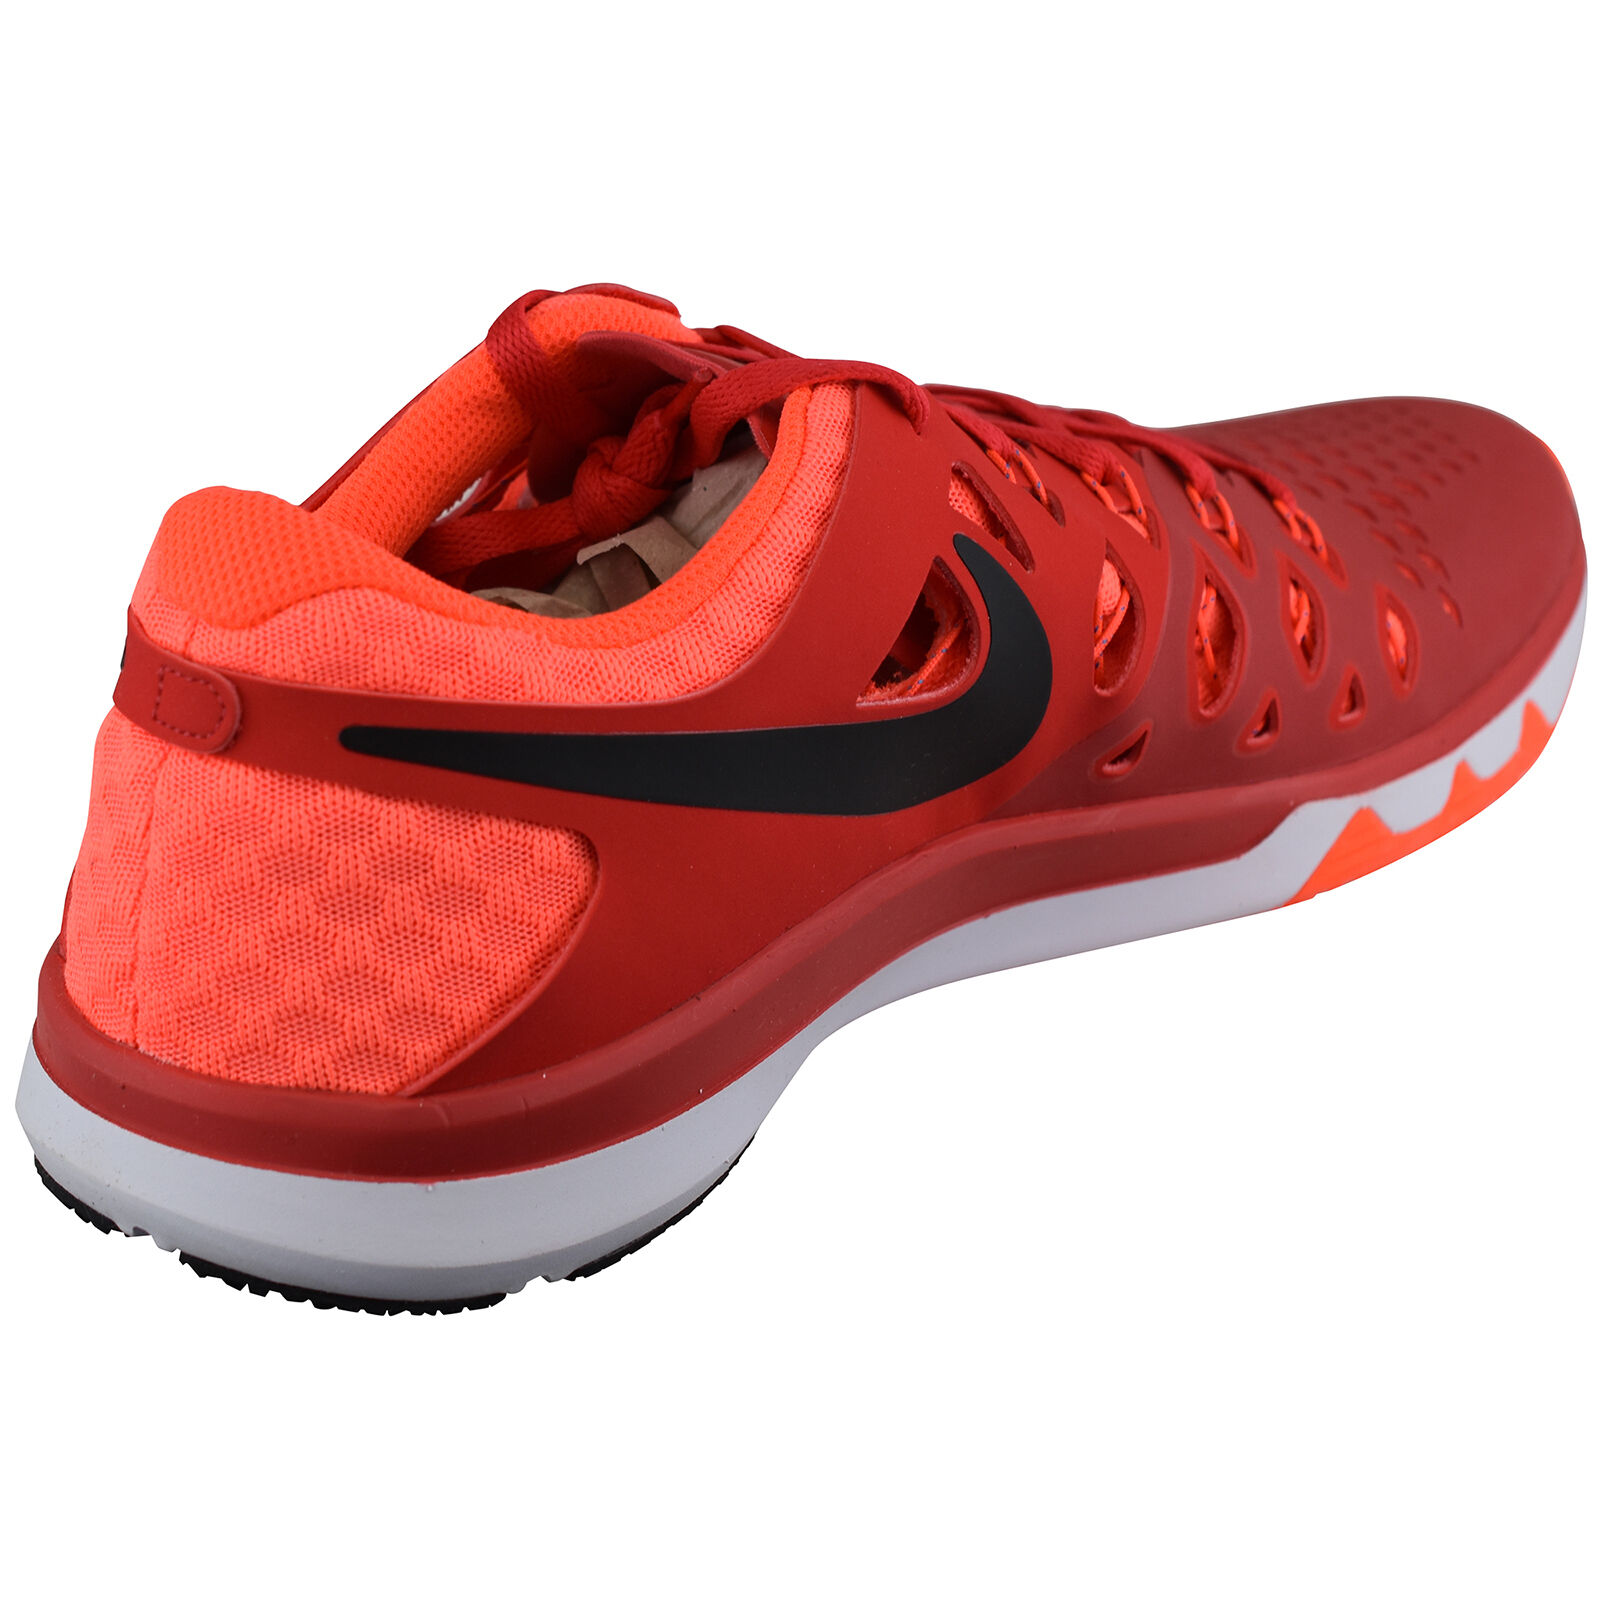 Nike Train Speed 4 843937-600 Jogging Running Leisure Running shoes Trainers